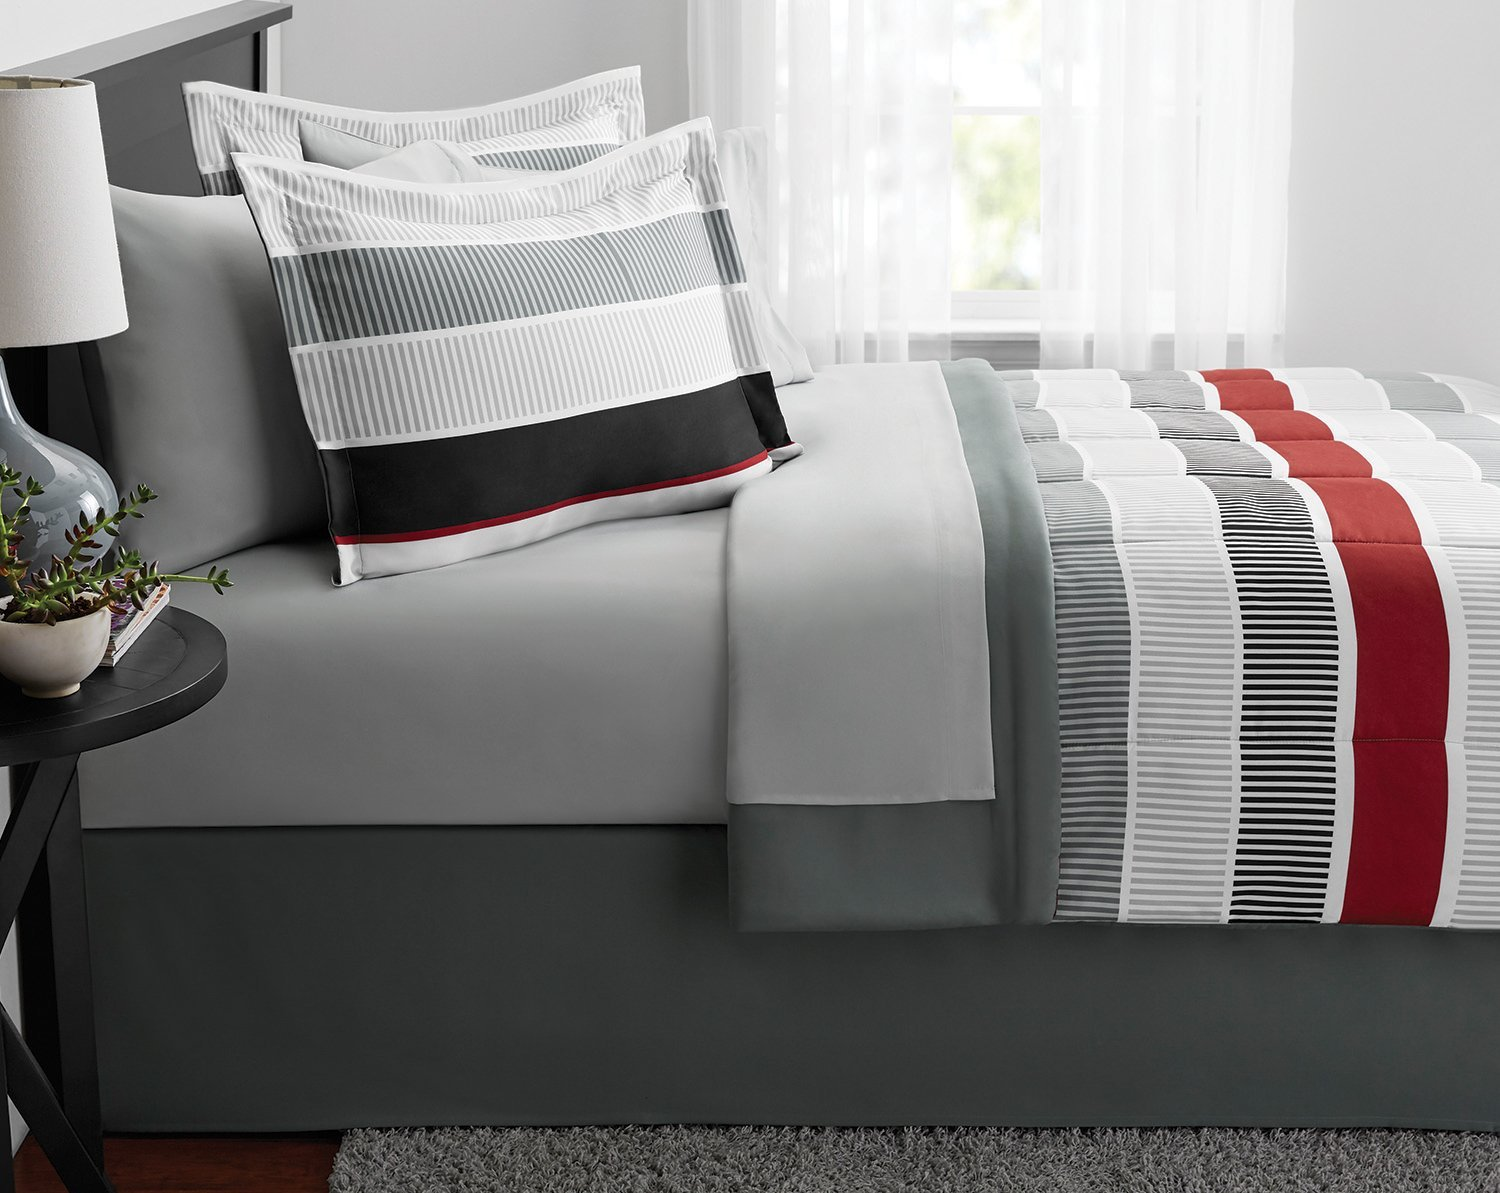 N2 8 Piece Grey Red White Rugby Stripes Comforter Queen Set, Horizontal Striped Bedding Sports Themed Modern Gray Toned Classic Stylish, Reversible Solid Microfiber Polyester